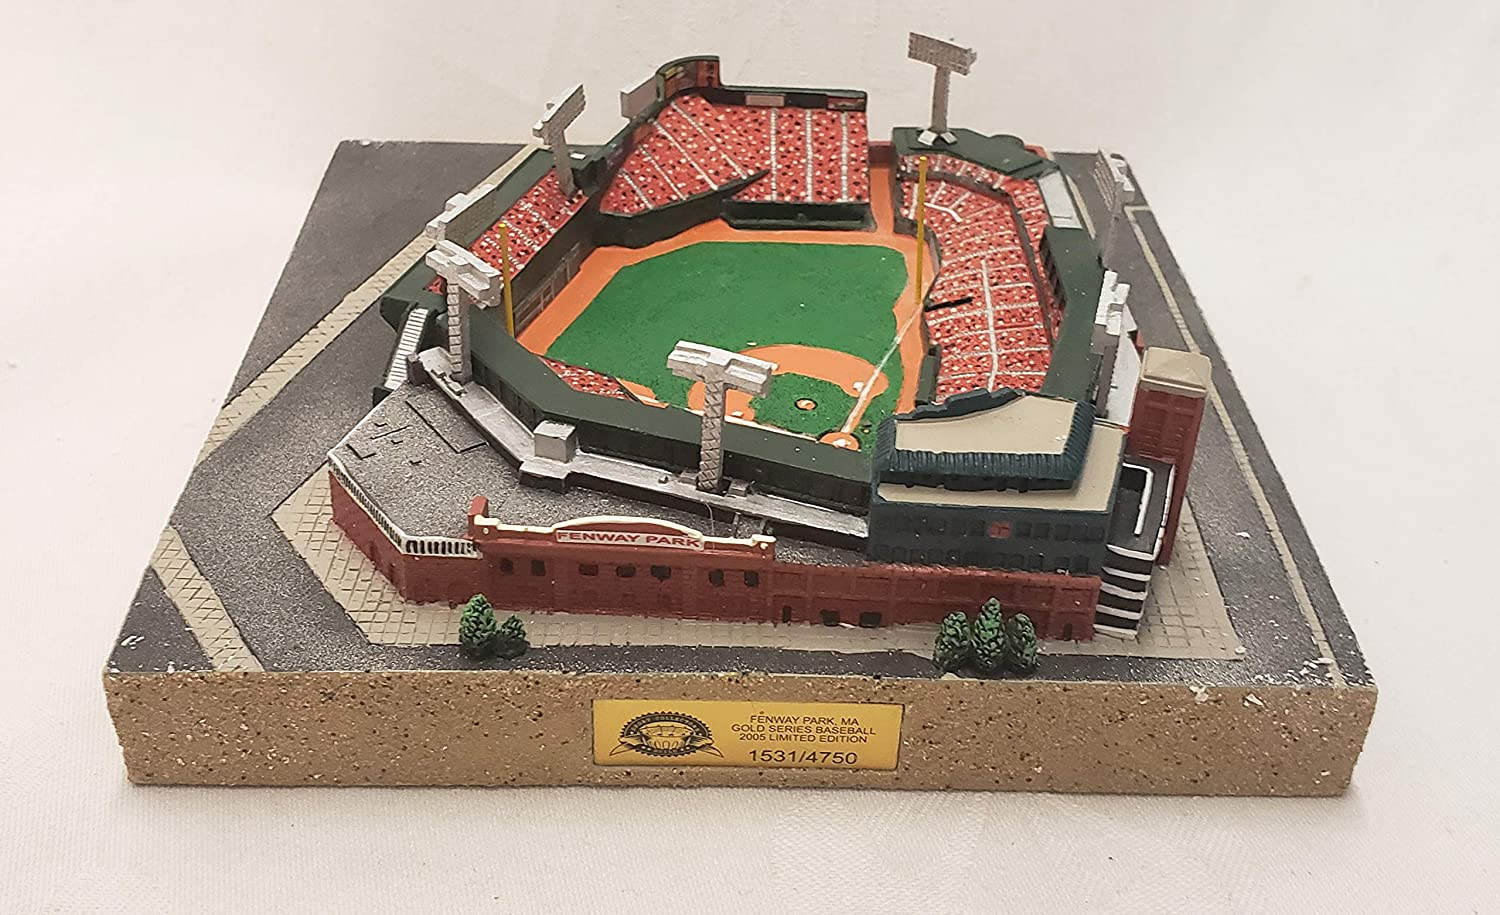 Boston Red Sox Fenway Park Gold Series Stadium Replica